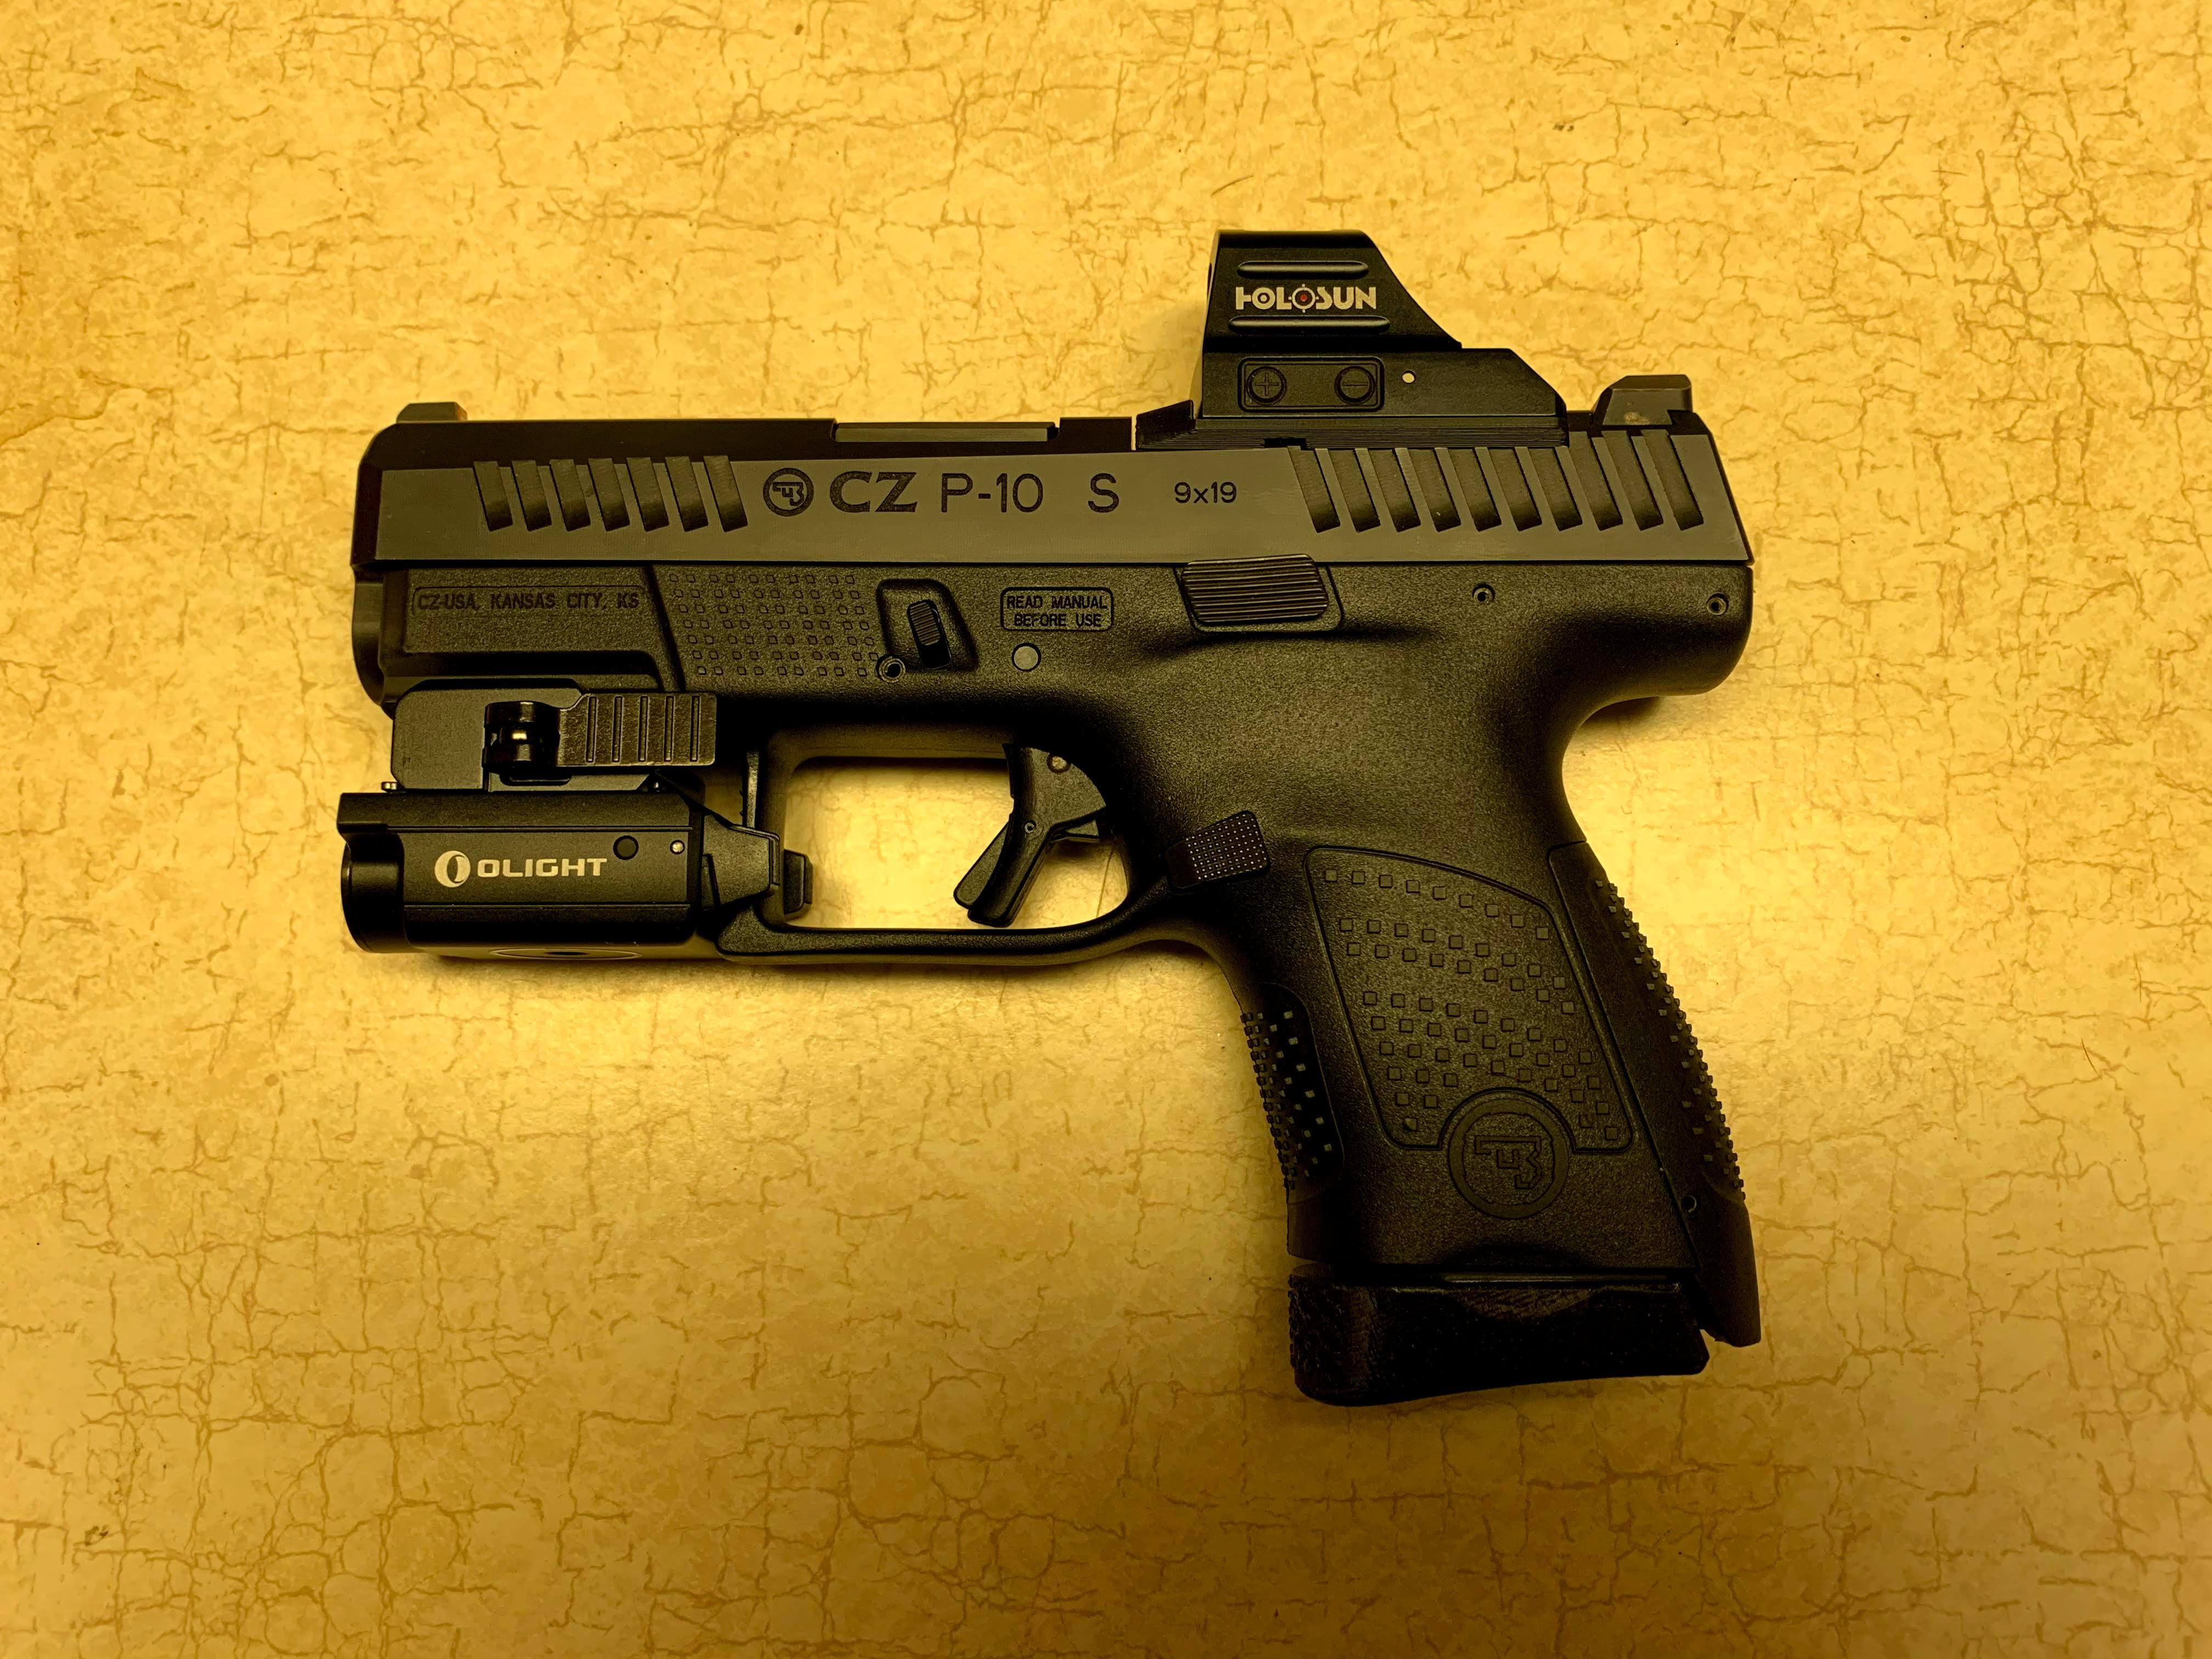 Thumbnail: CZ P10 Series RMR and Holosun Optic Mounting Plate PREORDER